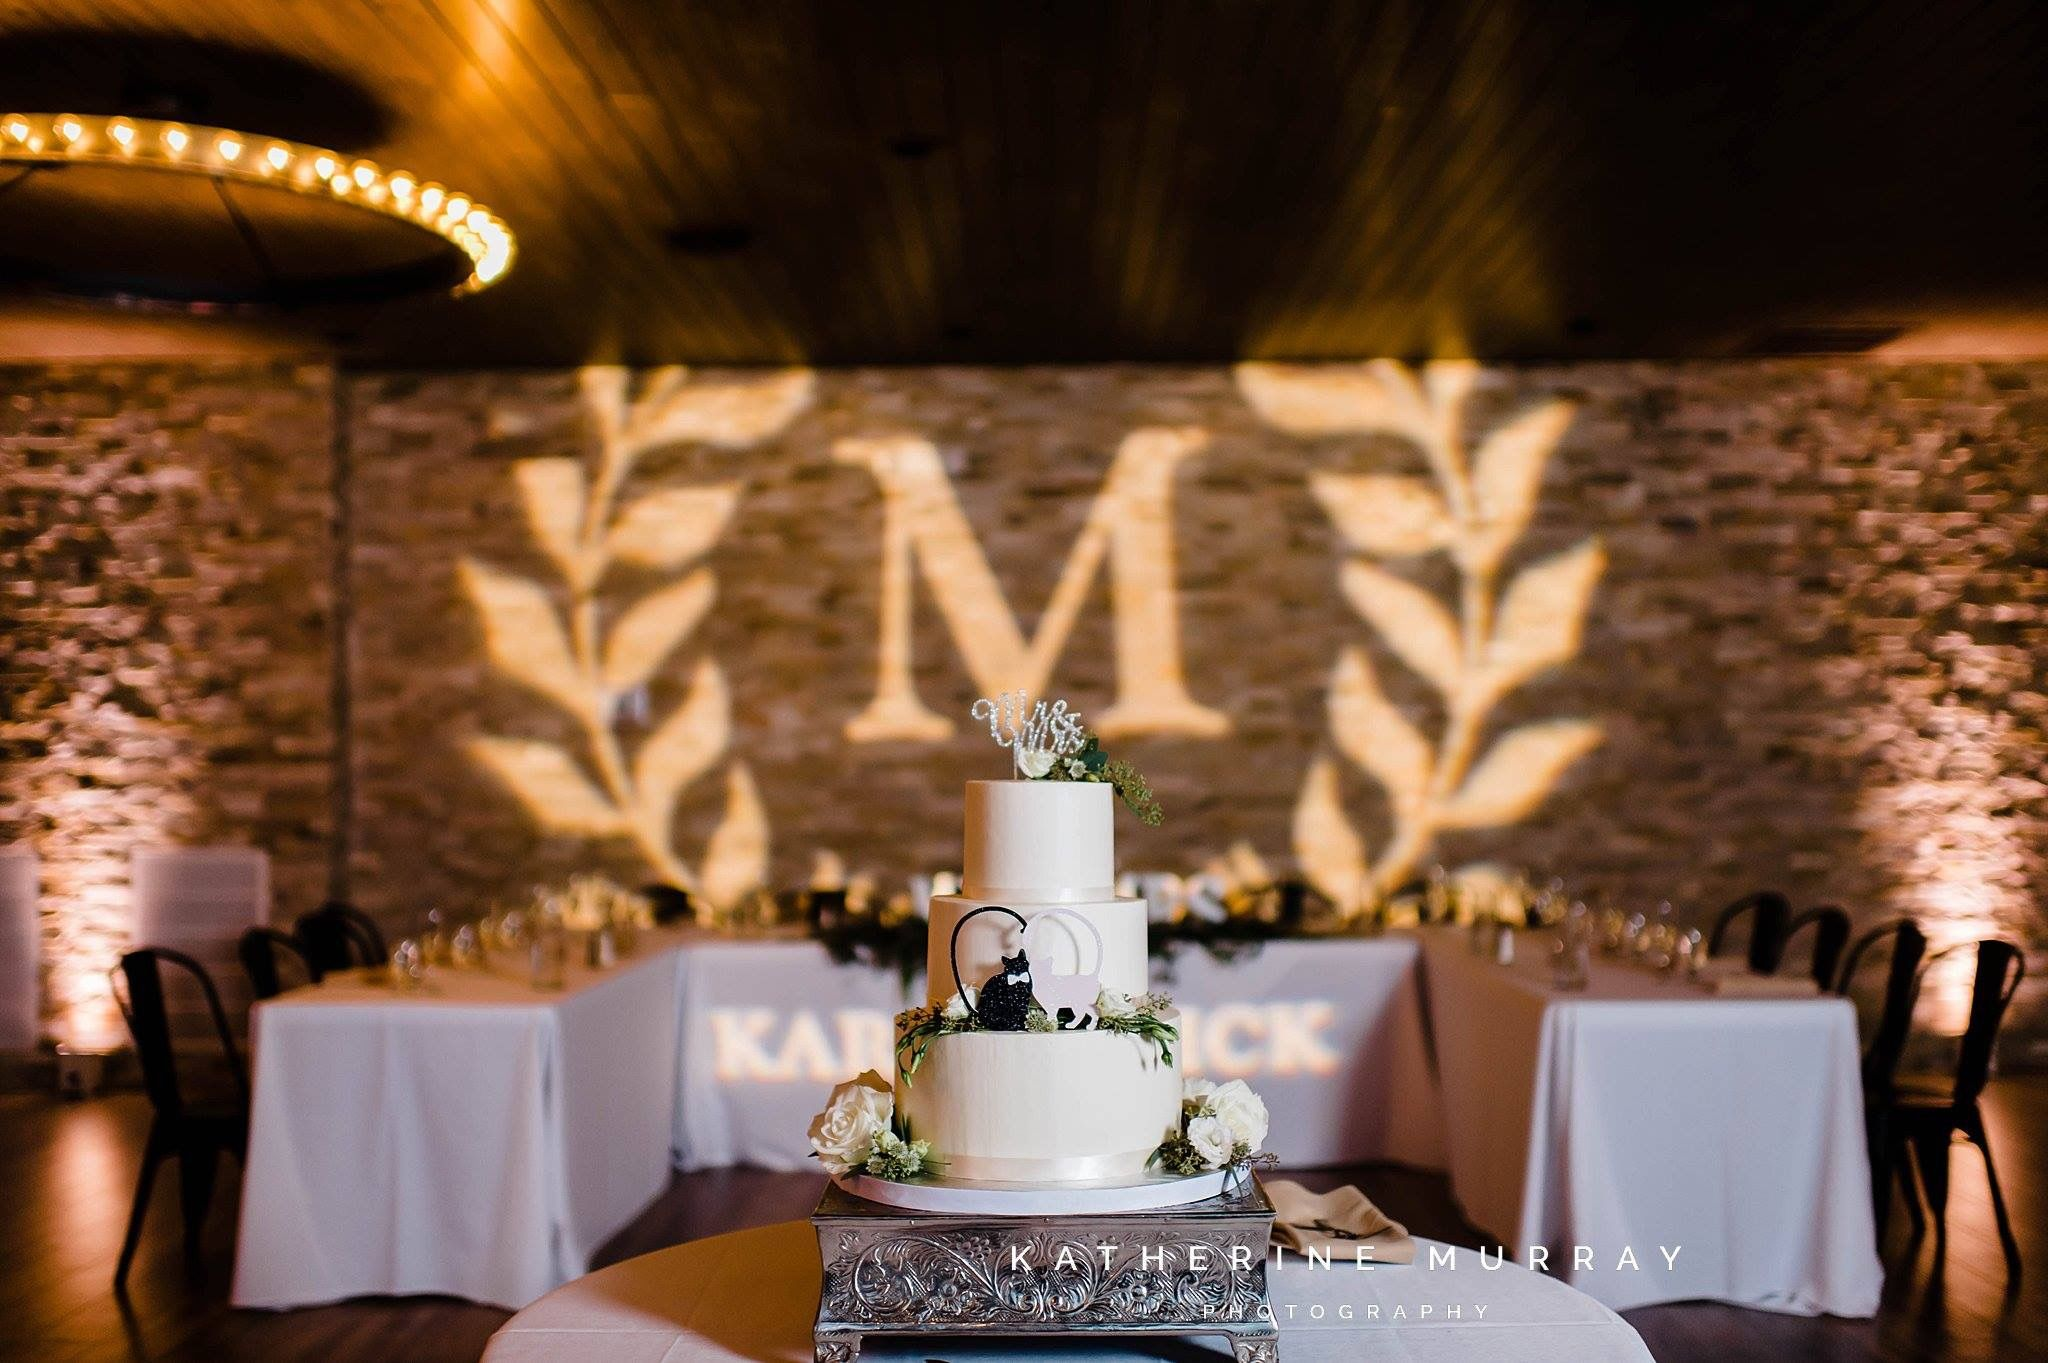 Cake and monogram in the ballroom wedding venues event